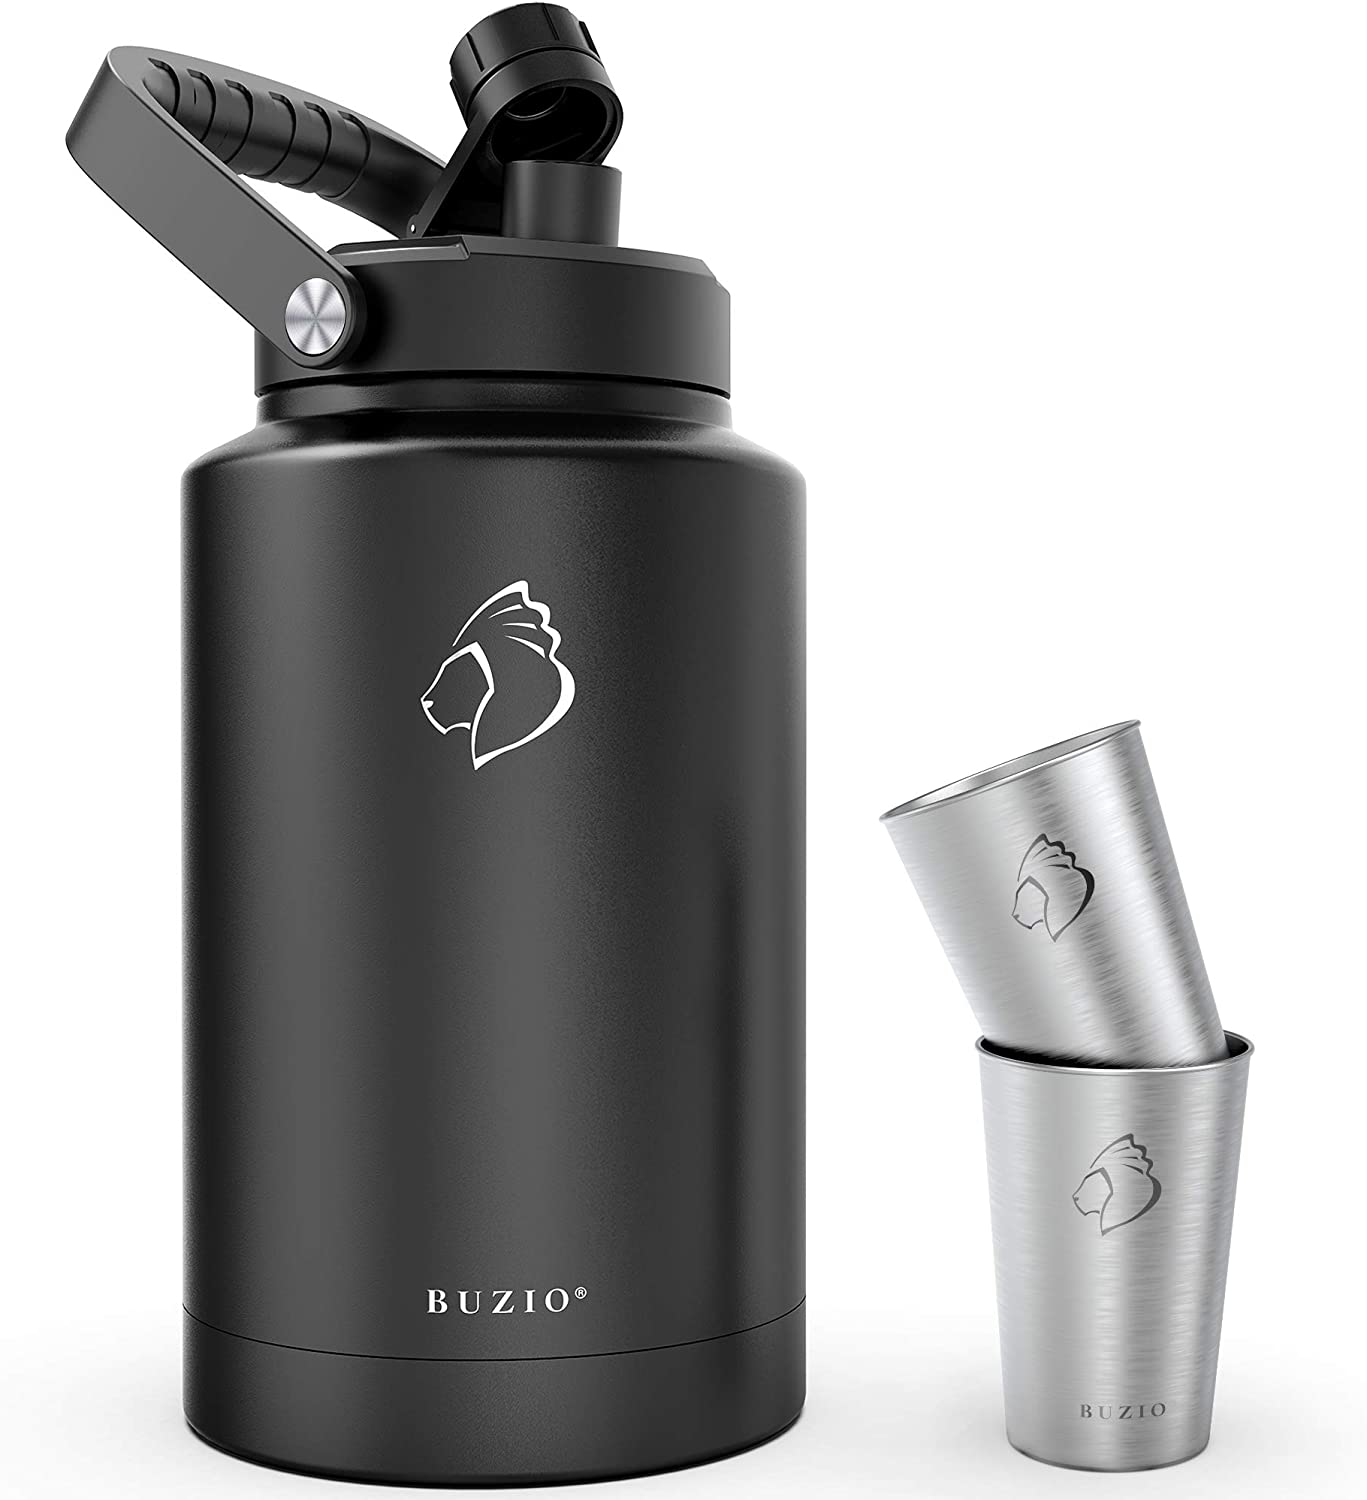 BUZIO One Gallon Vacuum Insulated Jug, 18/8 Food-Grade Stainless Steel 128 oz Water Bottle Comes with Two Stainless Steel Cups Thermo Canteen Mug